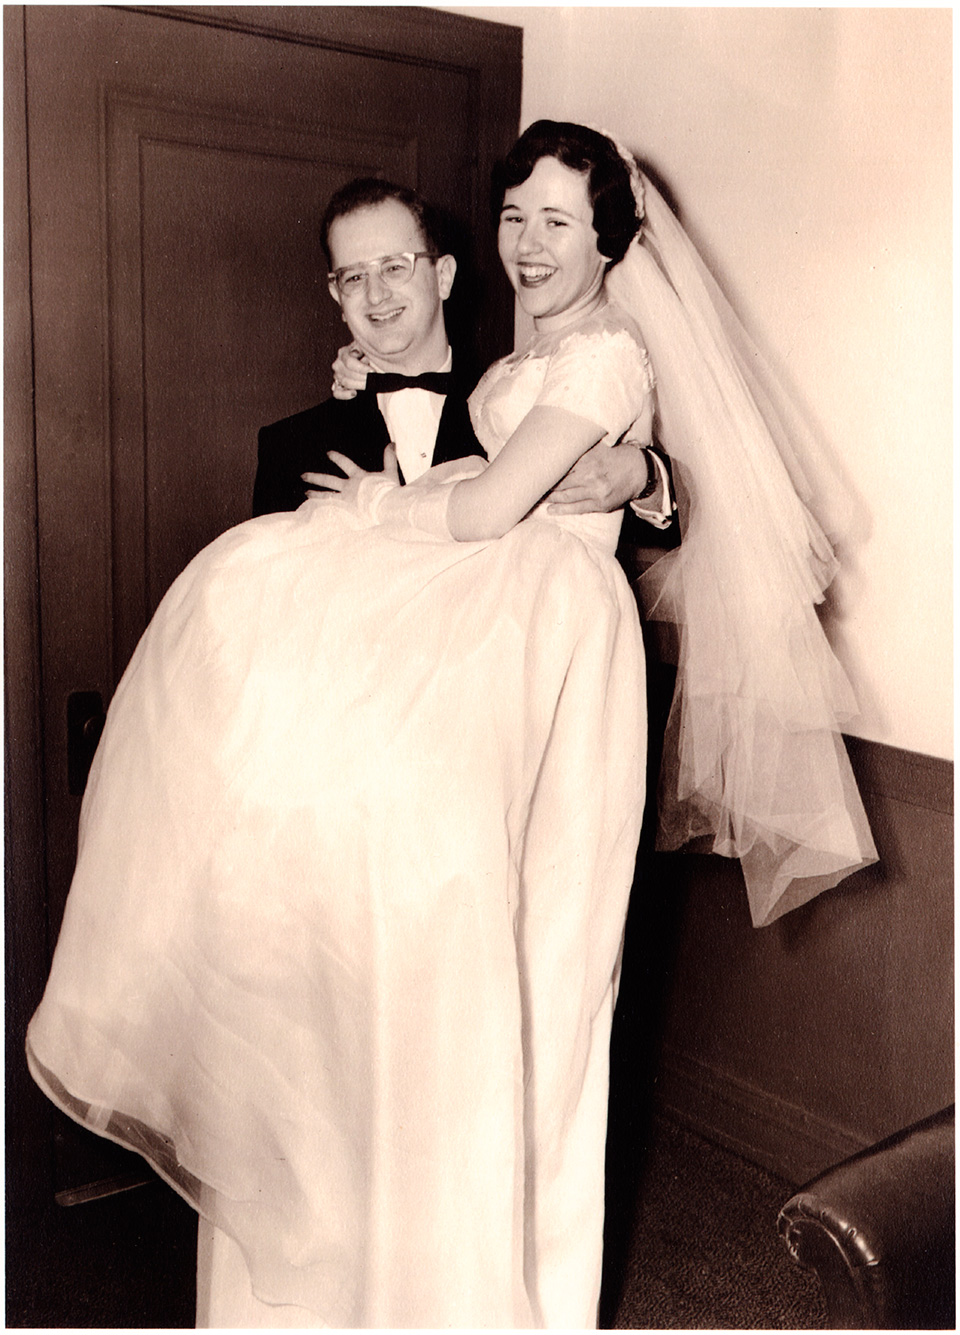 Image of R.S. and Rita Mendelsohn on their wedding day, dressed in their groom's and bride's outfits. R.S is carrying Rita as they stand in front of a door. A portion of a couch is also visible.